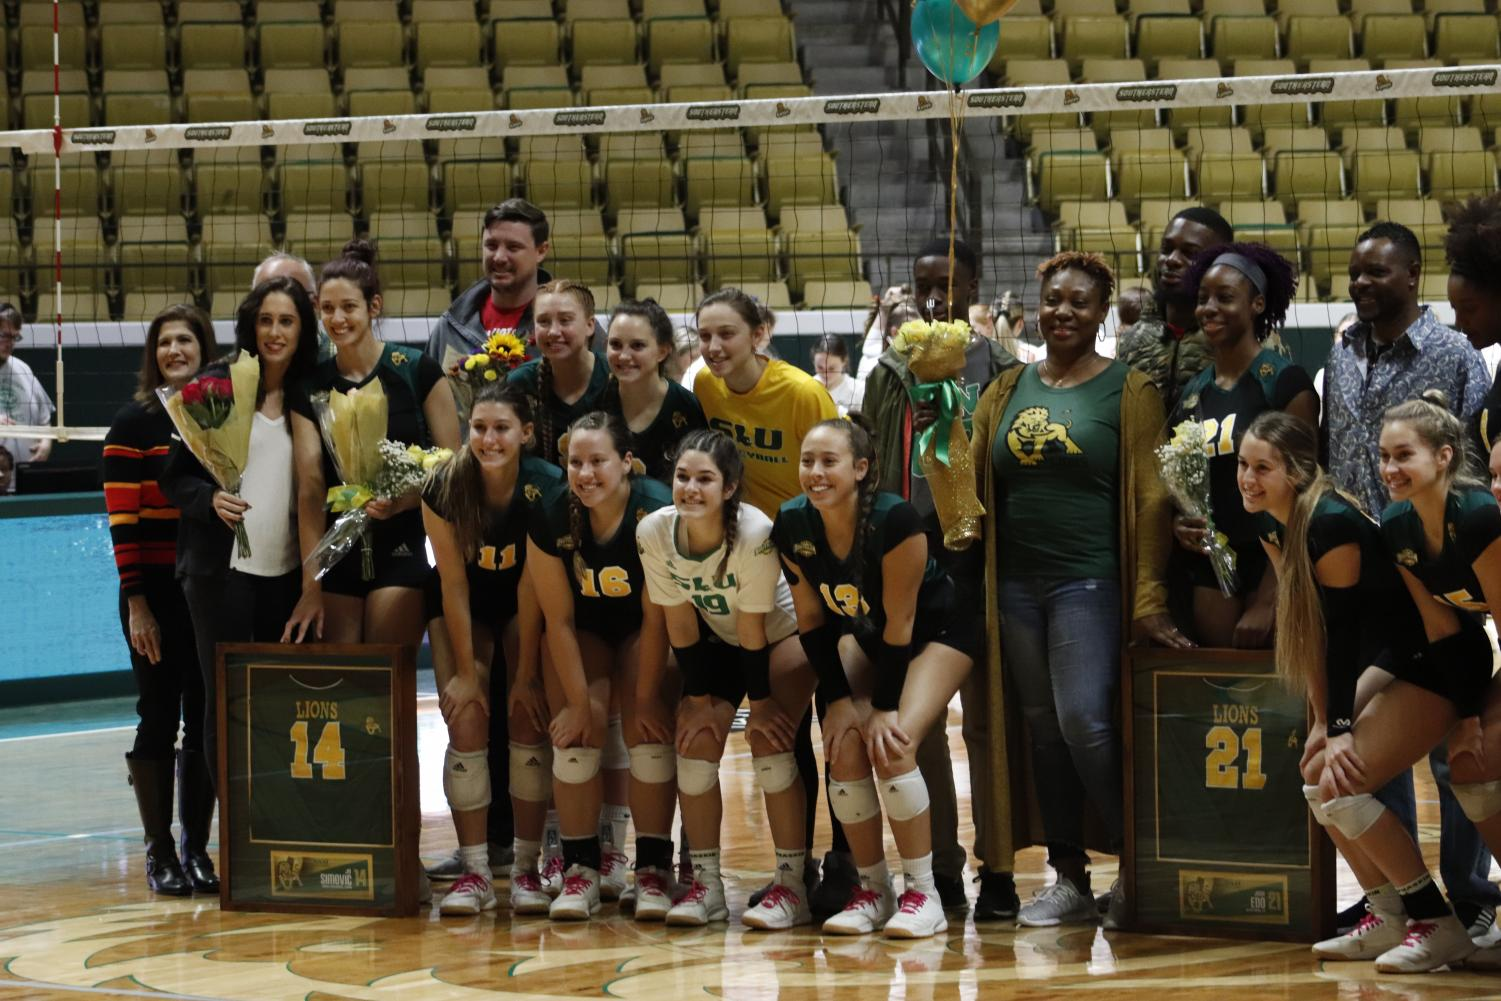 The volleyball team takes a picture with seniors Jo Simovic and Jodi Edo. The Lady Lions next matchup will be against Sam Houston State on Nov. 22 in Conway, Ark.